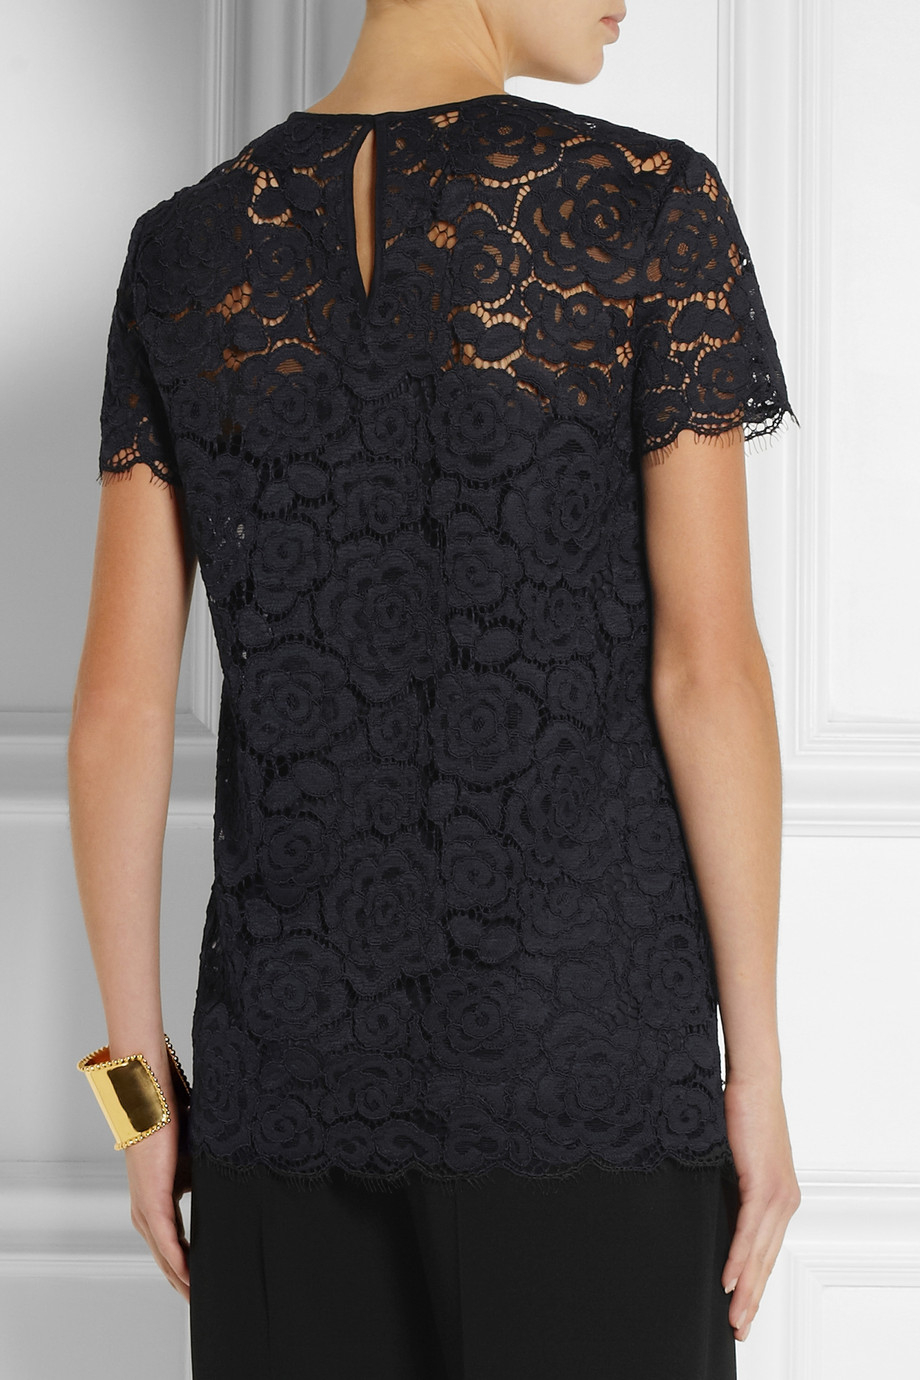 lyst dkny florallace top in black